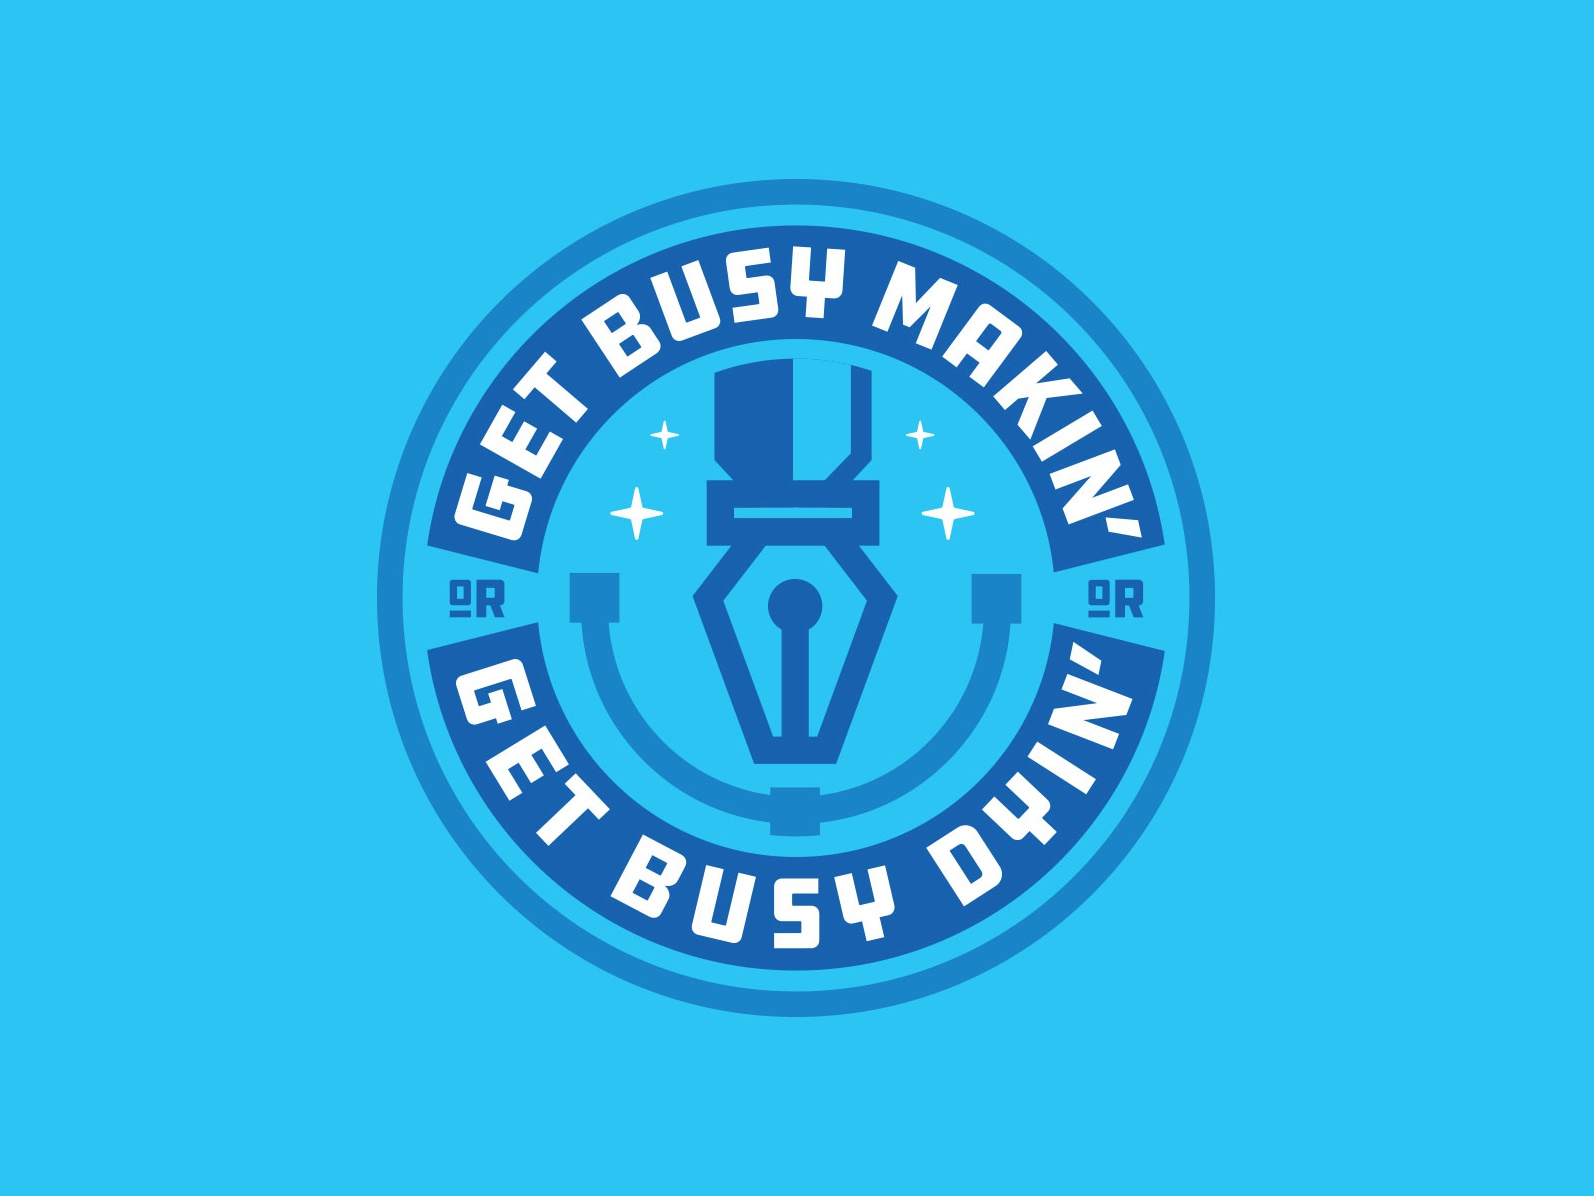 Get Busy Makin' Or Get Busy Dyin' illustration typography patch logoinspirations logo design badge design sticker emblem crest badge design logo